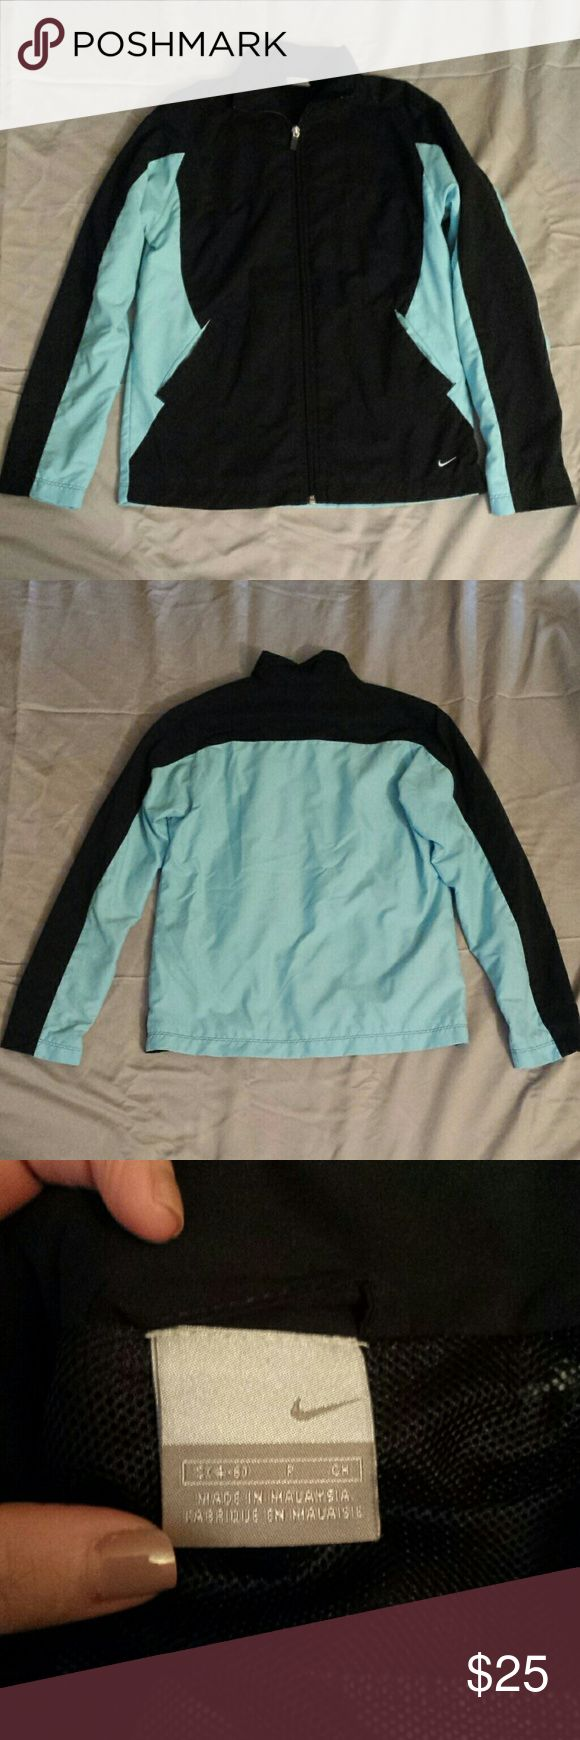 Nike Rain Jacket Nike rain jacket. It matches the nike pants i have listed. In great condition. Great for outdoor activities. Nike Jackets & Coats